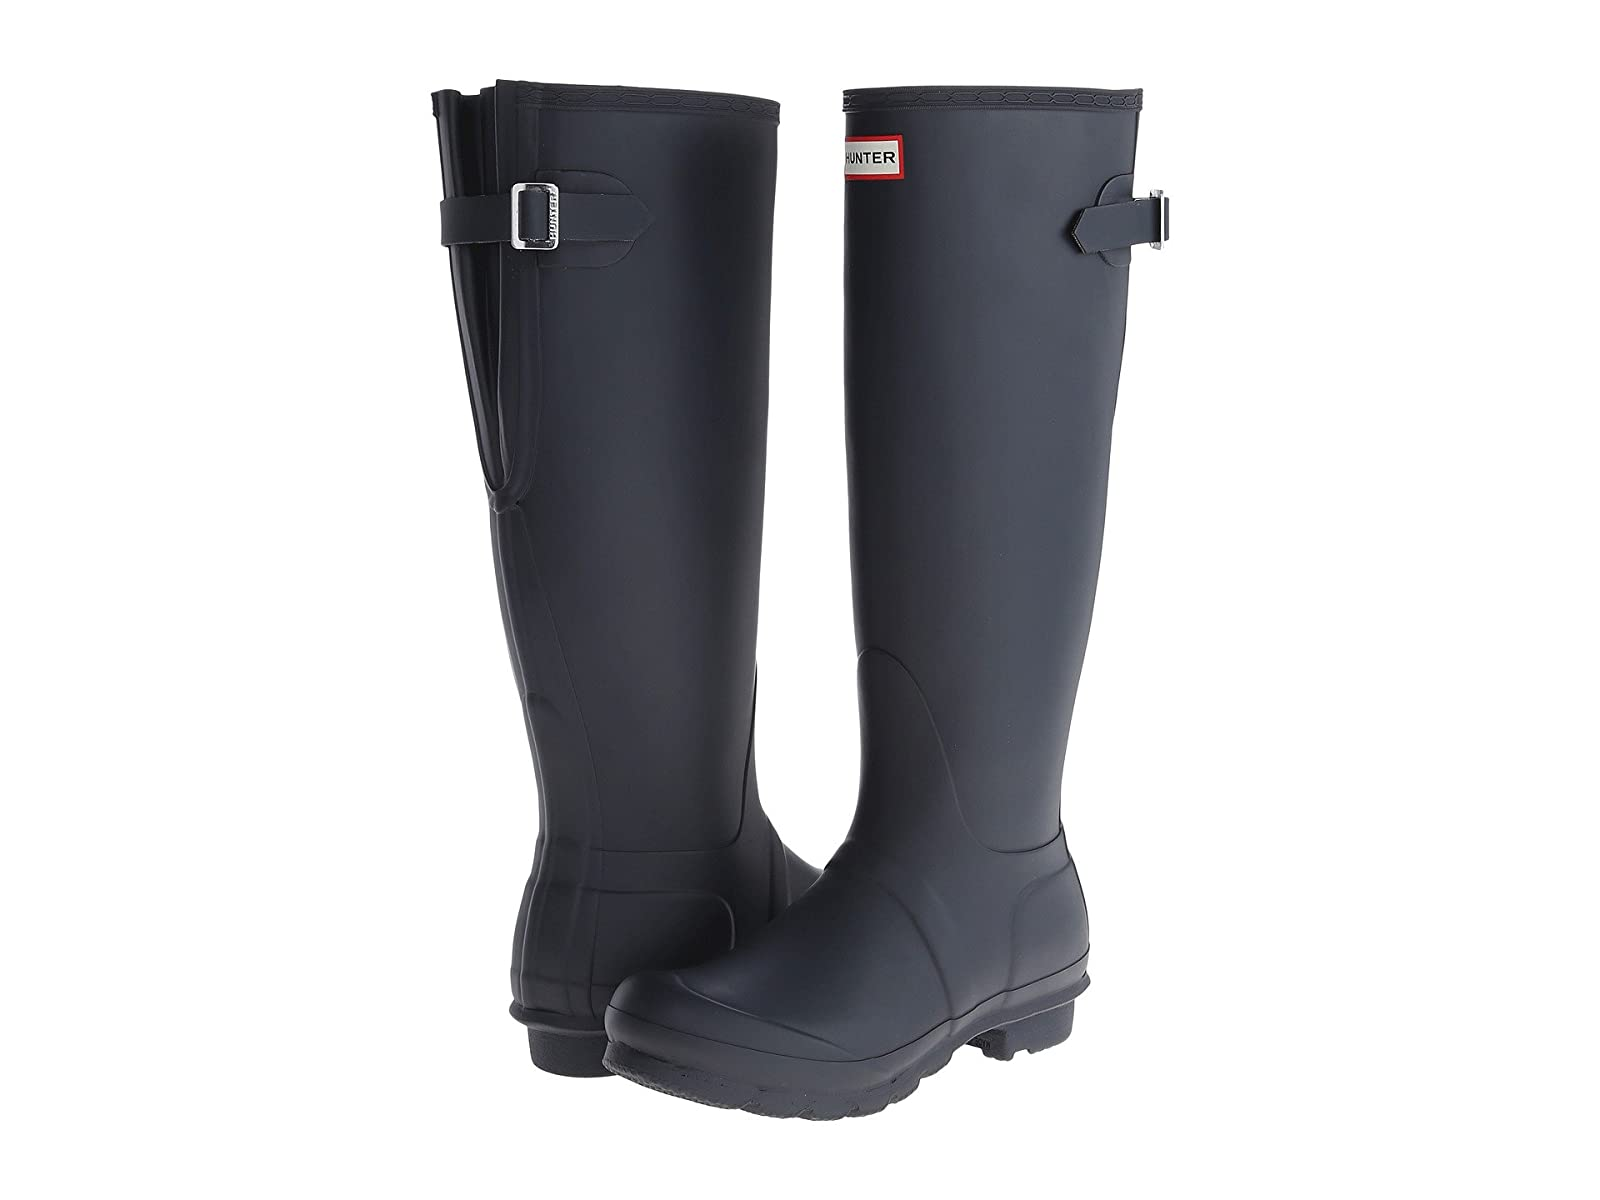 Hunter Original Back Adjustable Rain BootsAffordable and distinctive shoes